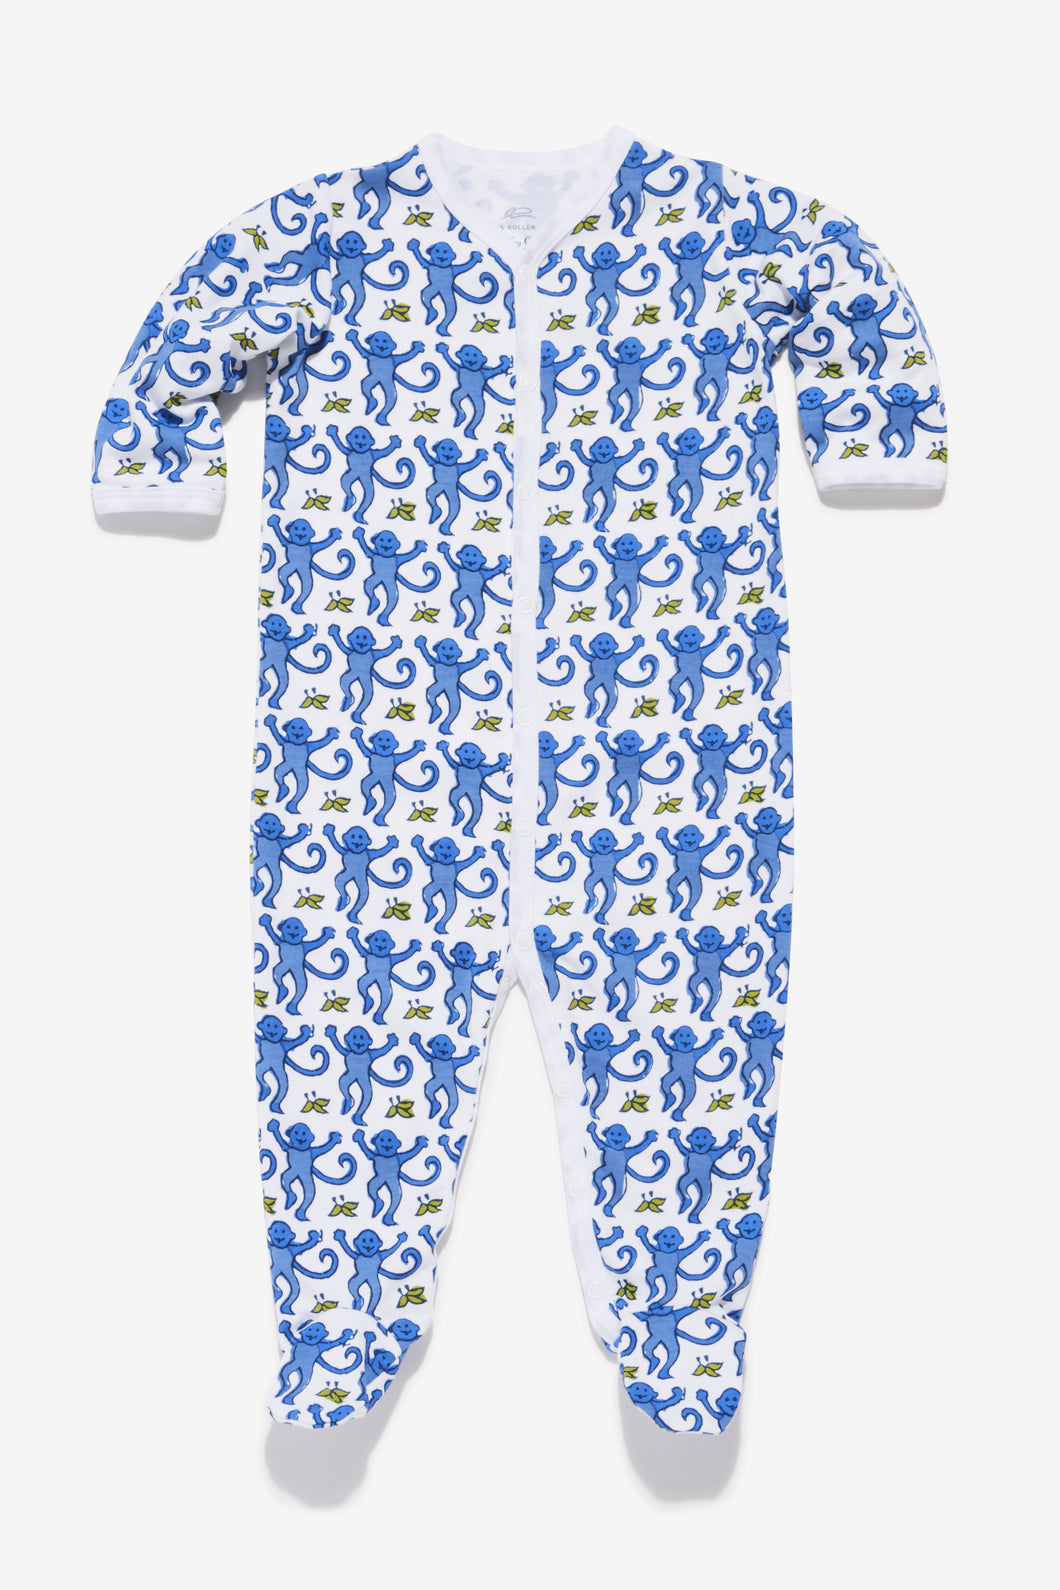 Roller Rabbit Kids, Infant Monkey Footie Pajamas